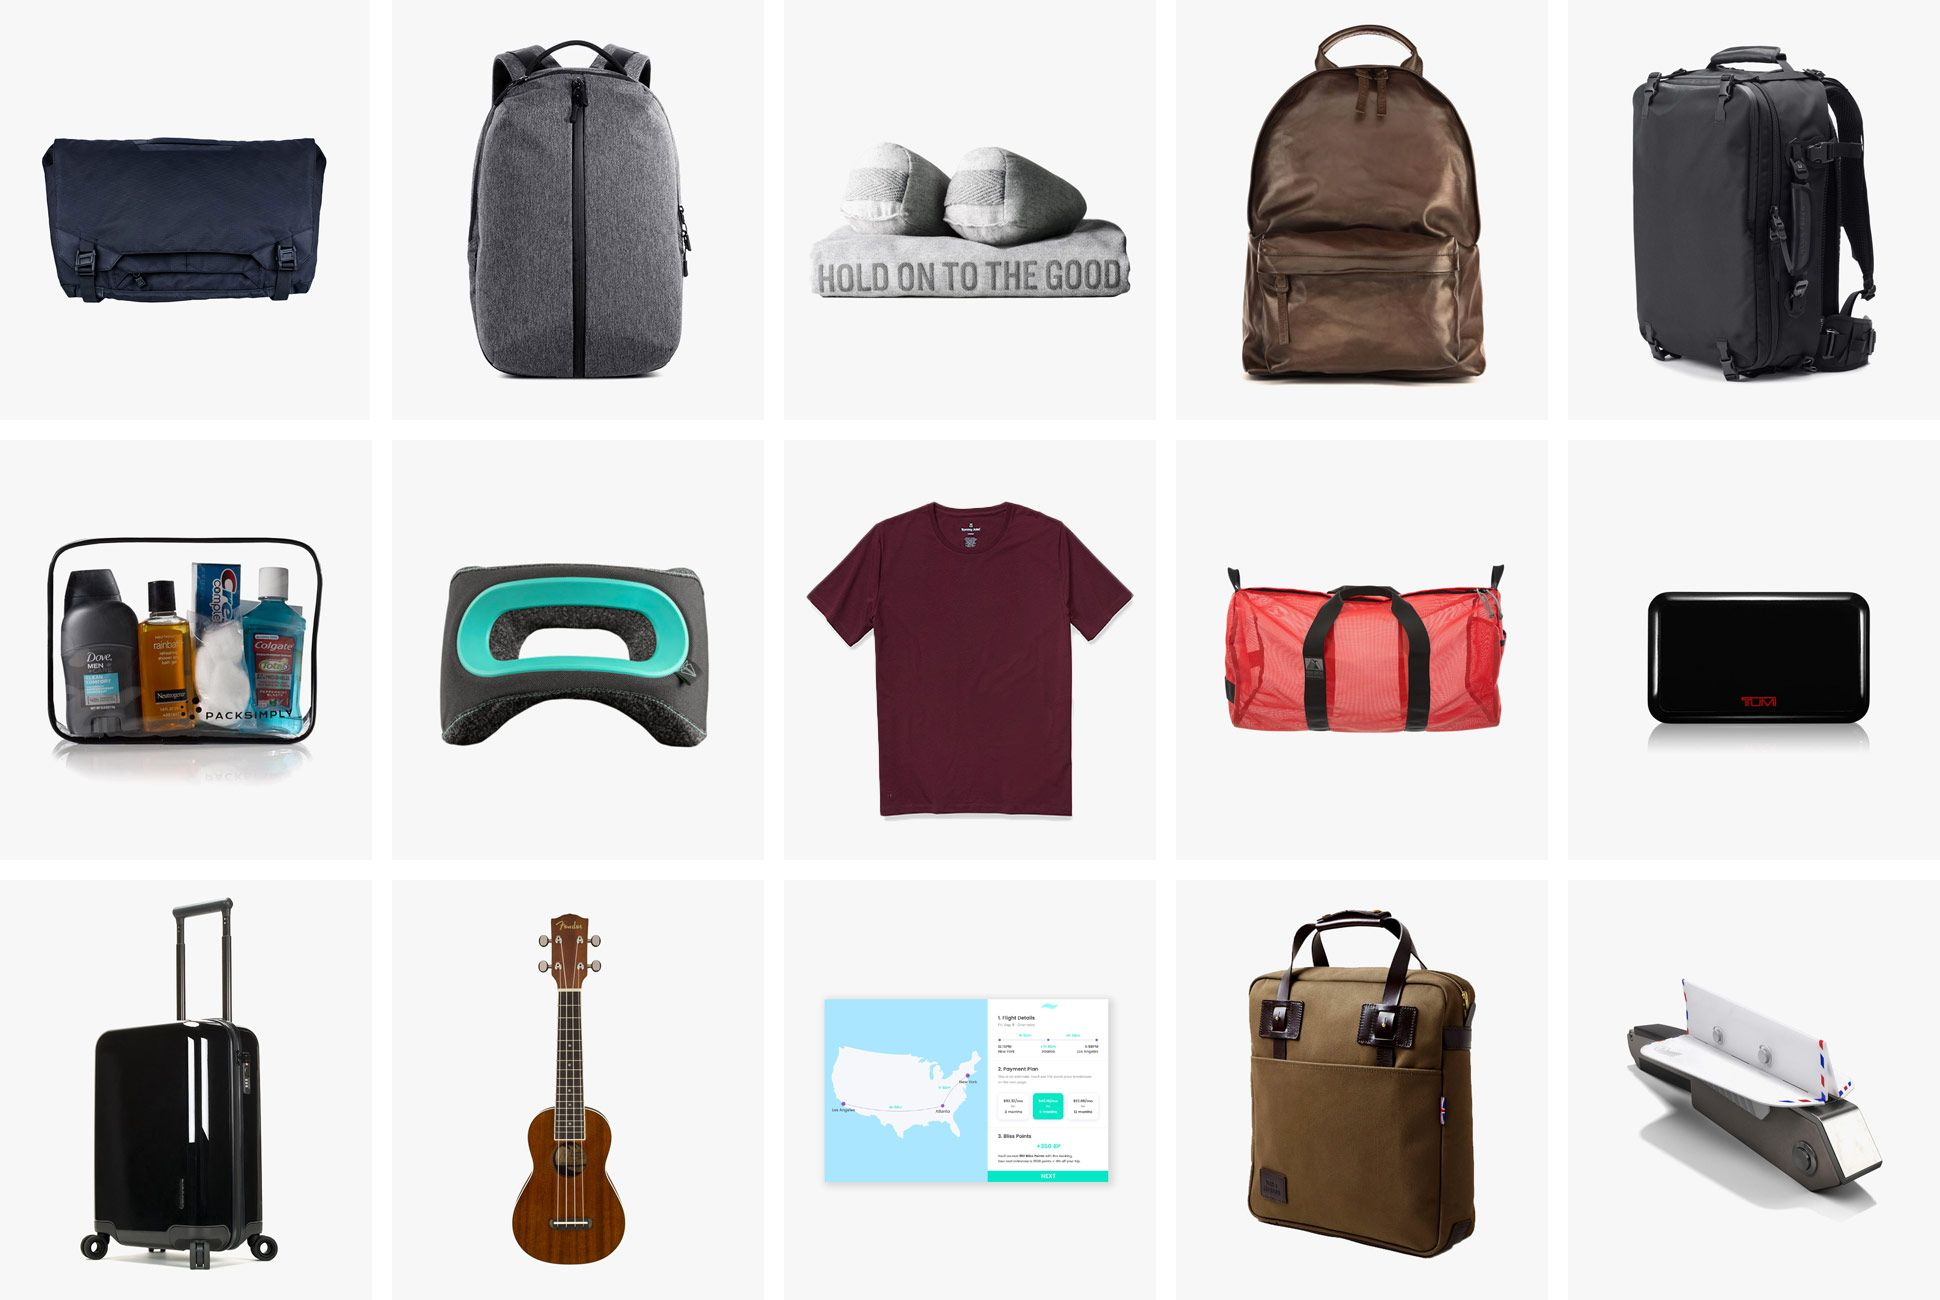 46 New and Notable Travel Releases in 2017 Gear Patrol